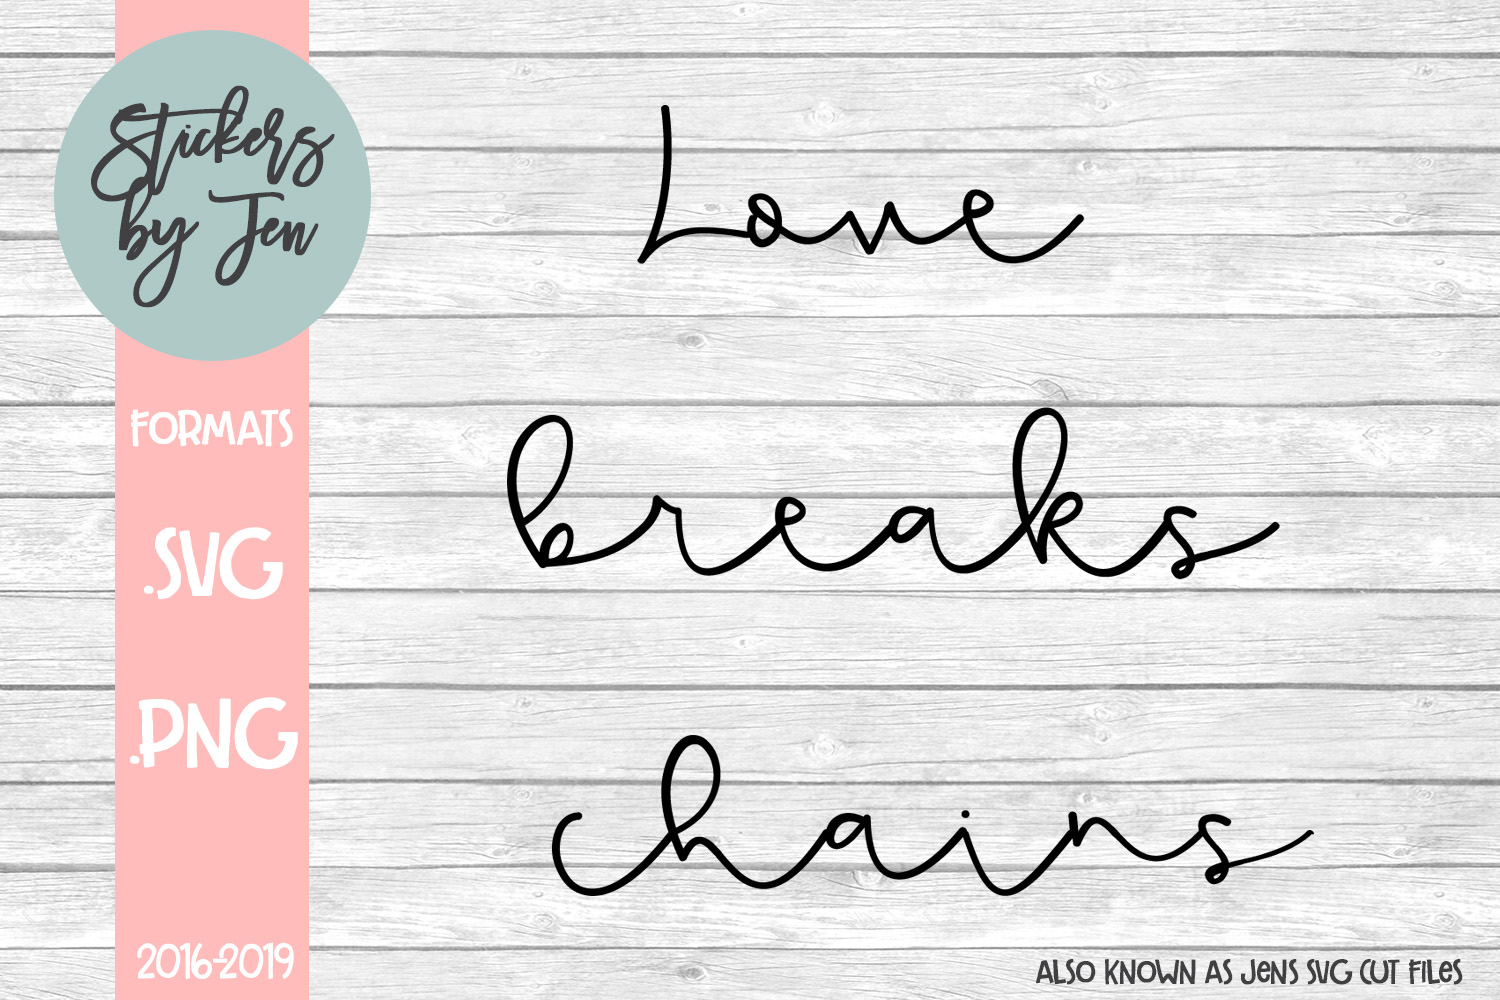 Love Breaks Chains Svg Graphic By Jens Svg Cut Files Creative